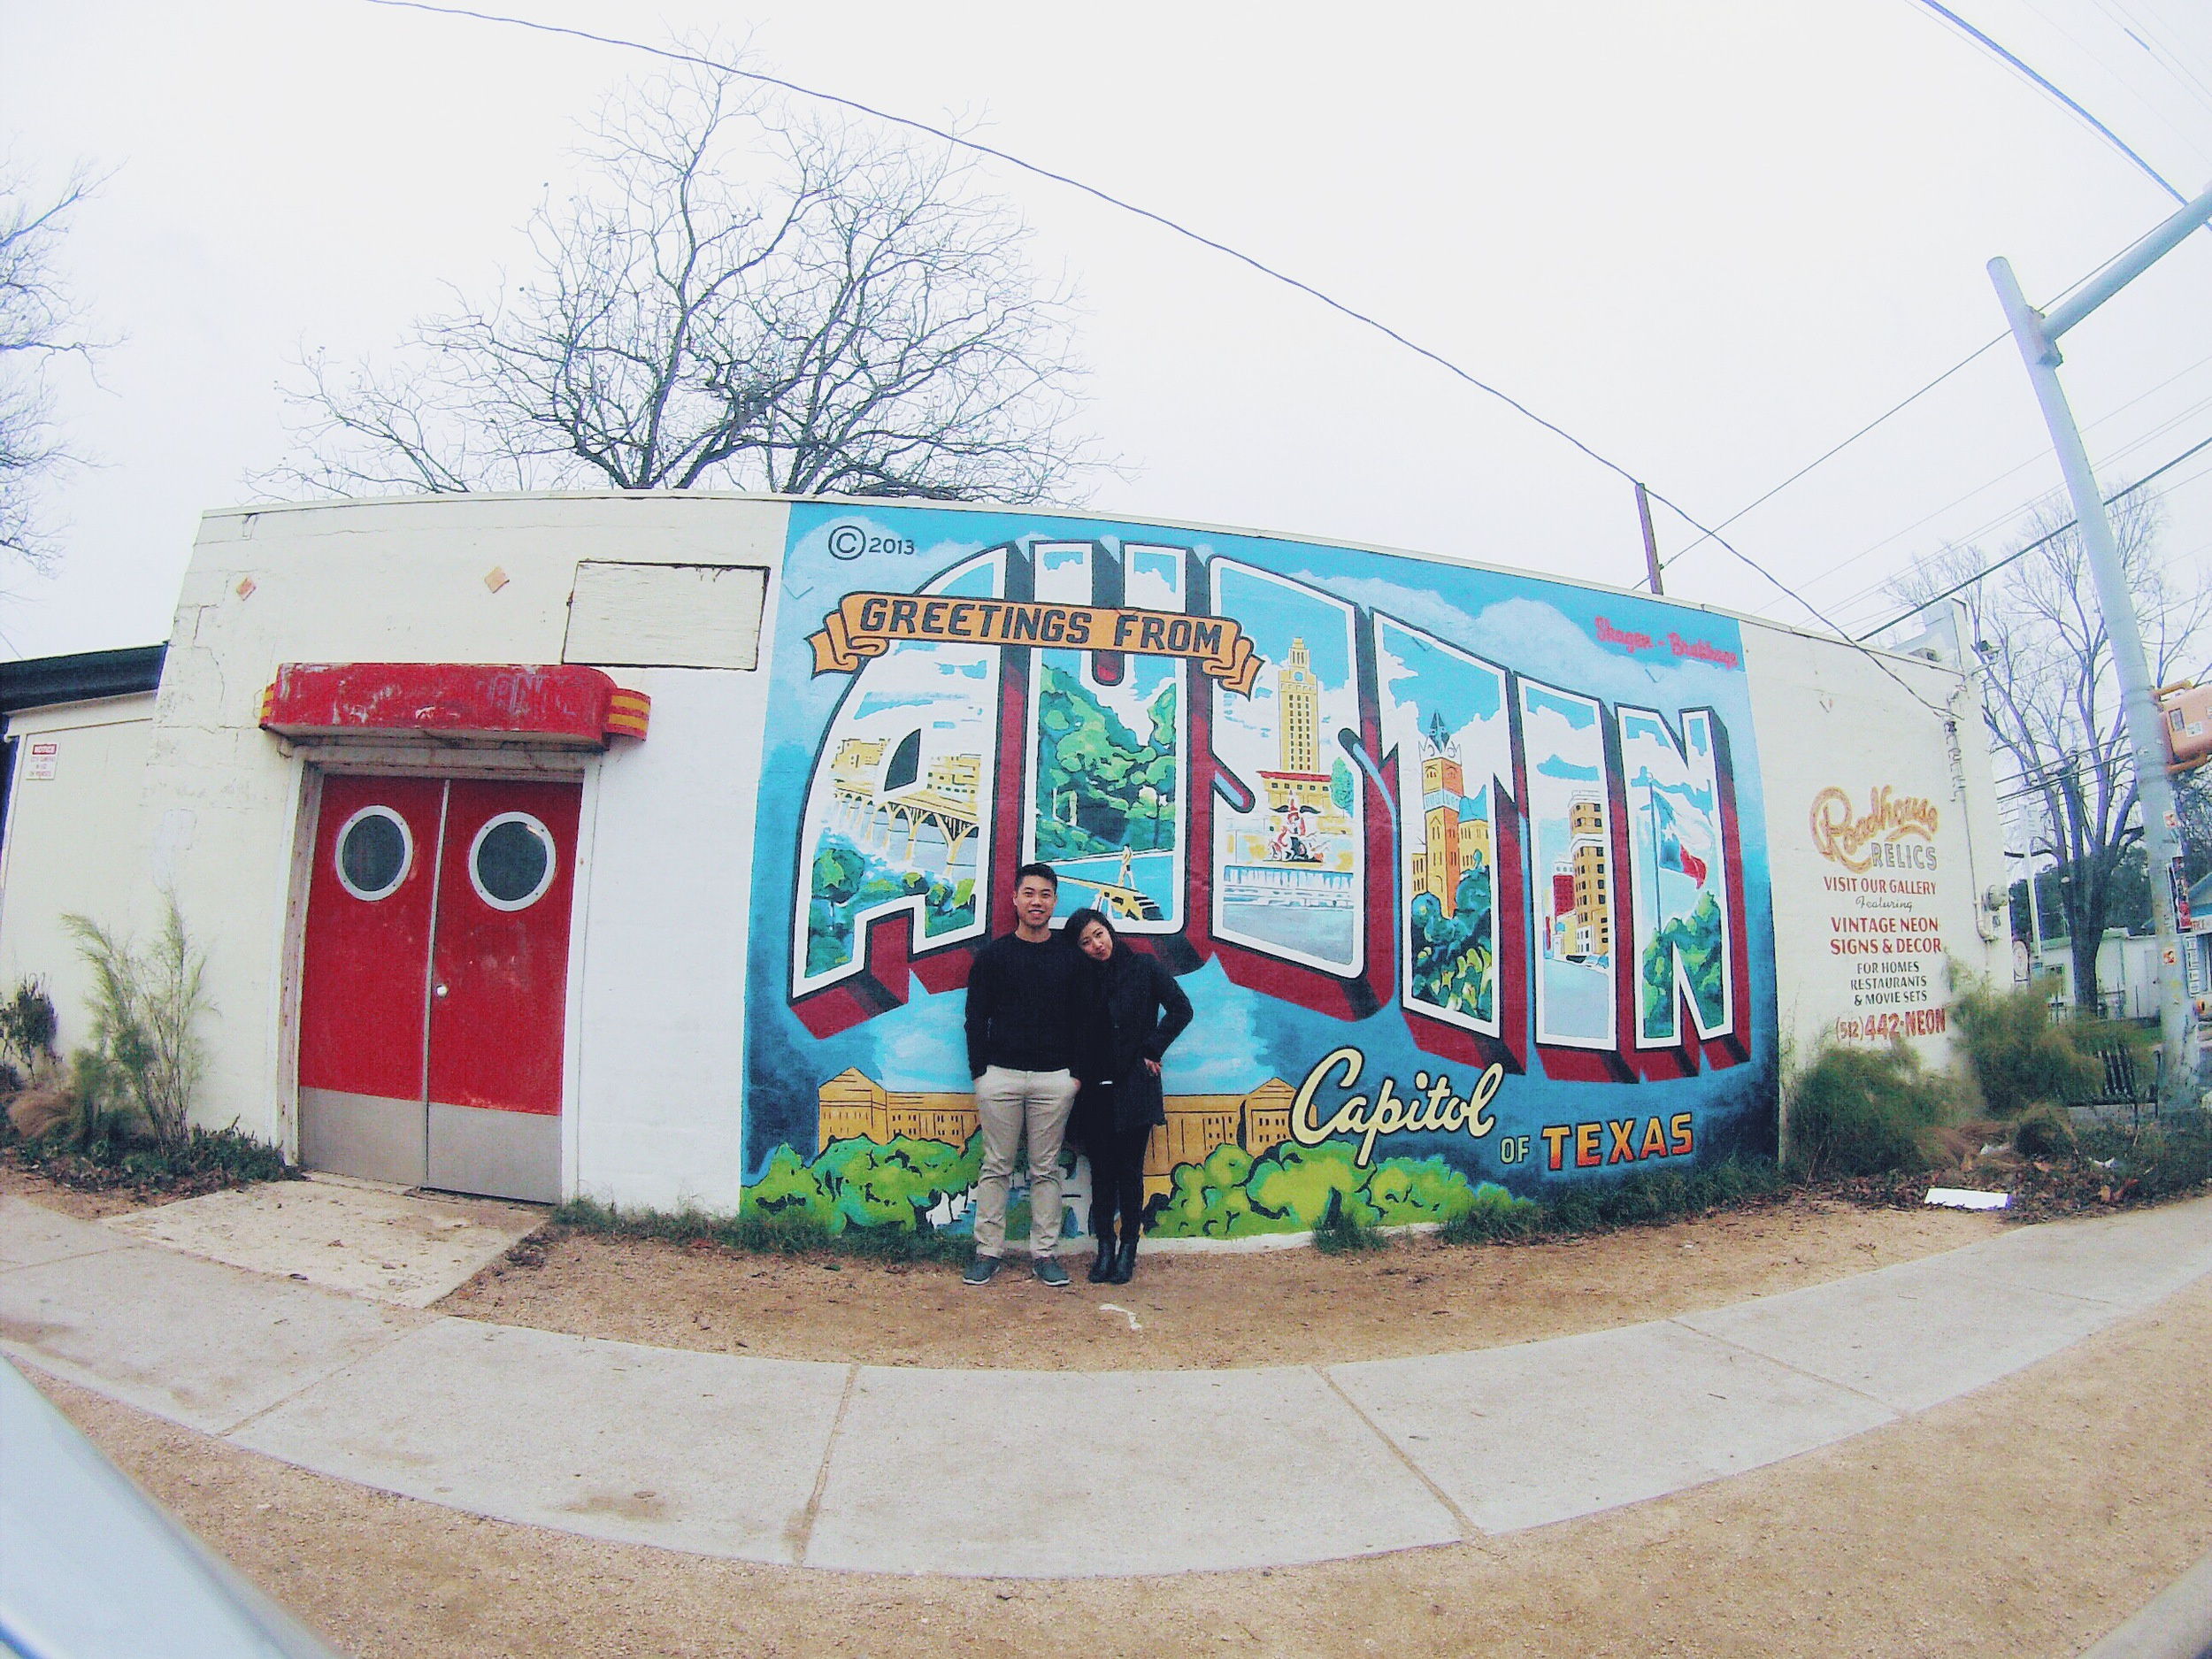 {greetings from austin from us!}